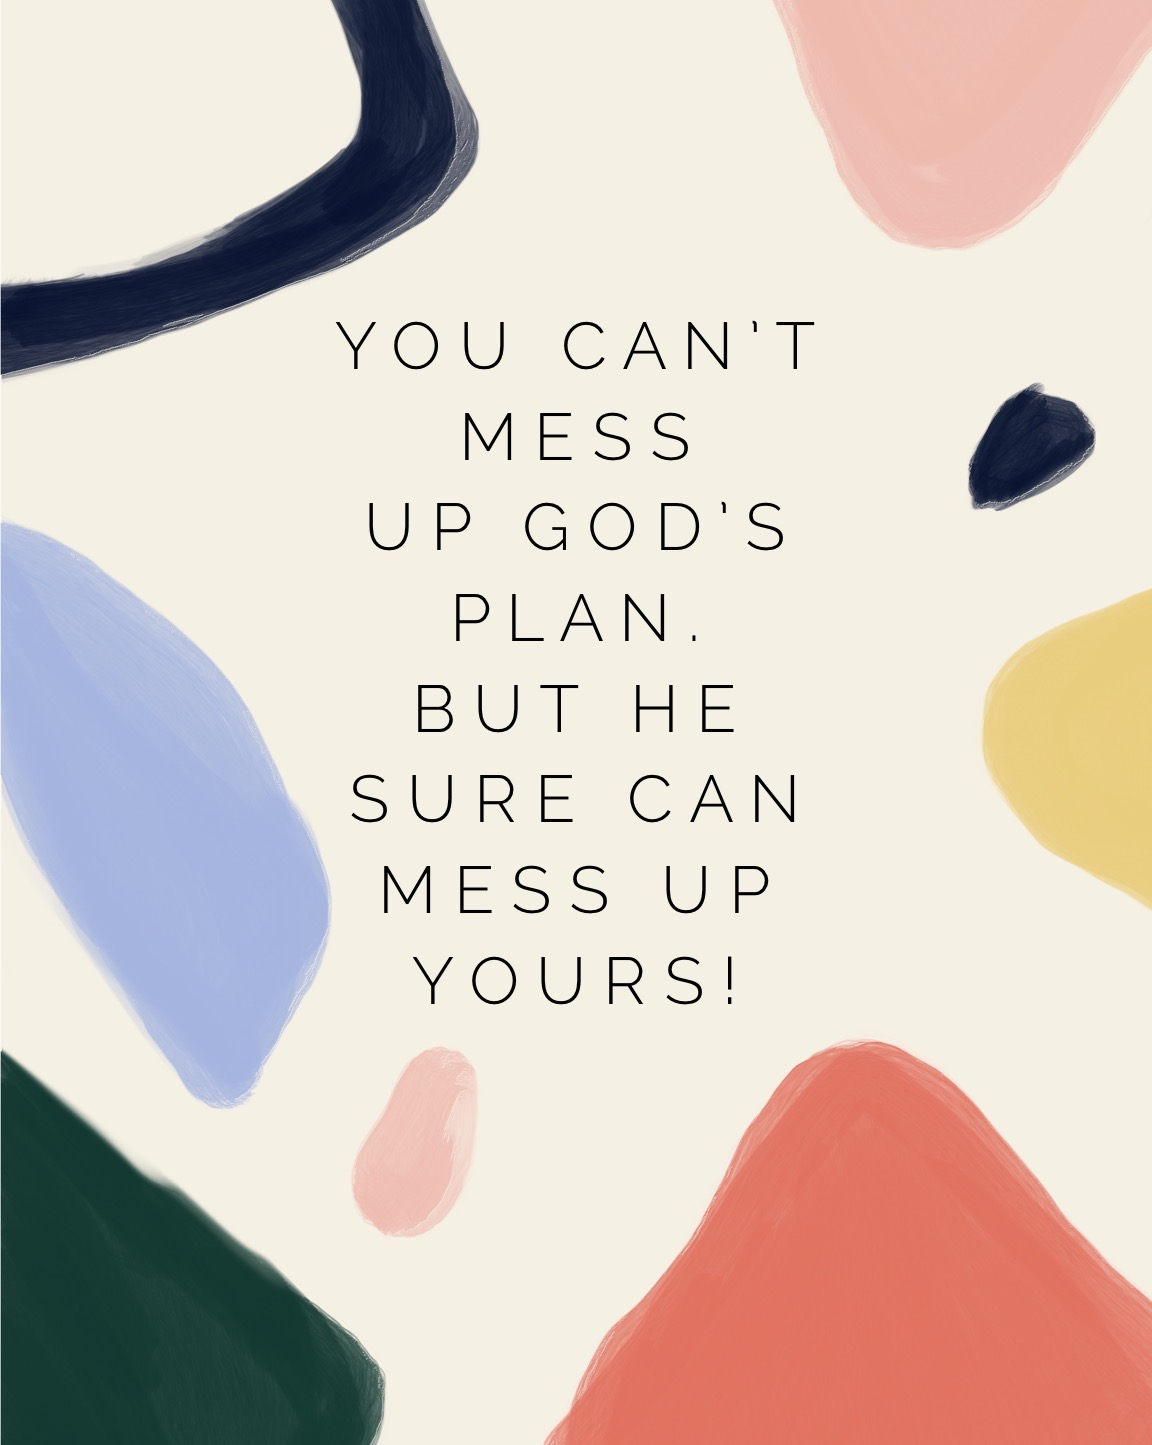 """You can't mess up God's plans. But he sure can mess up yours!"""